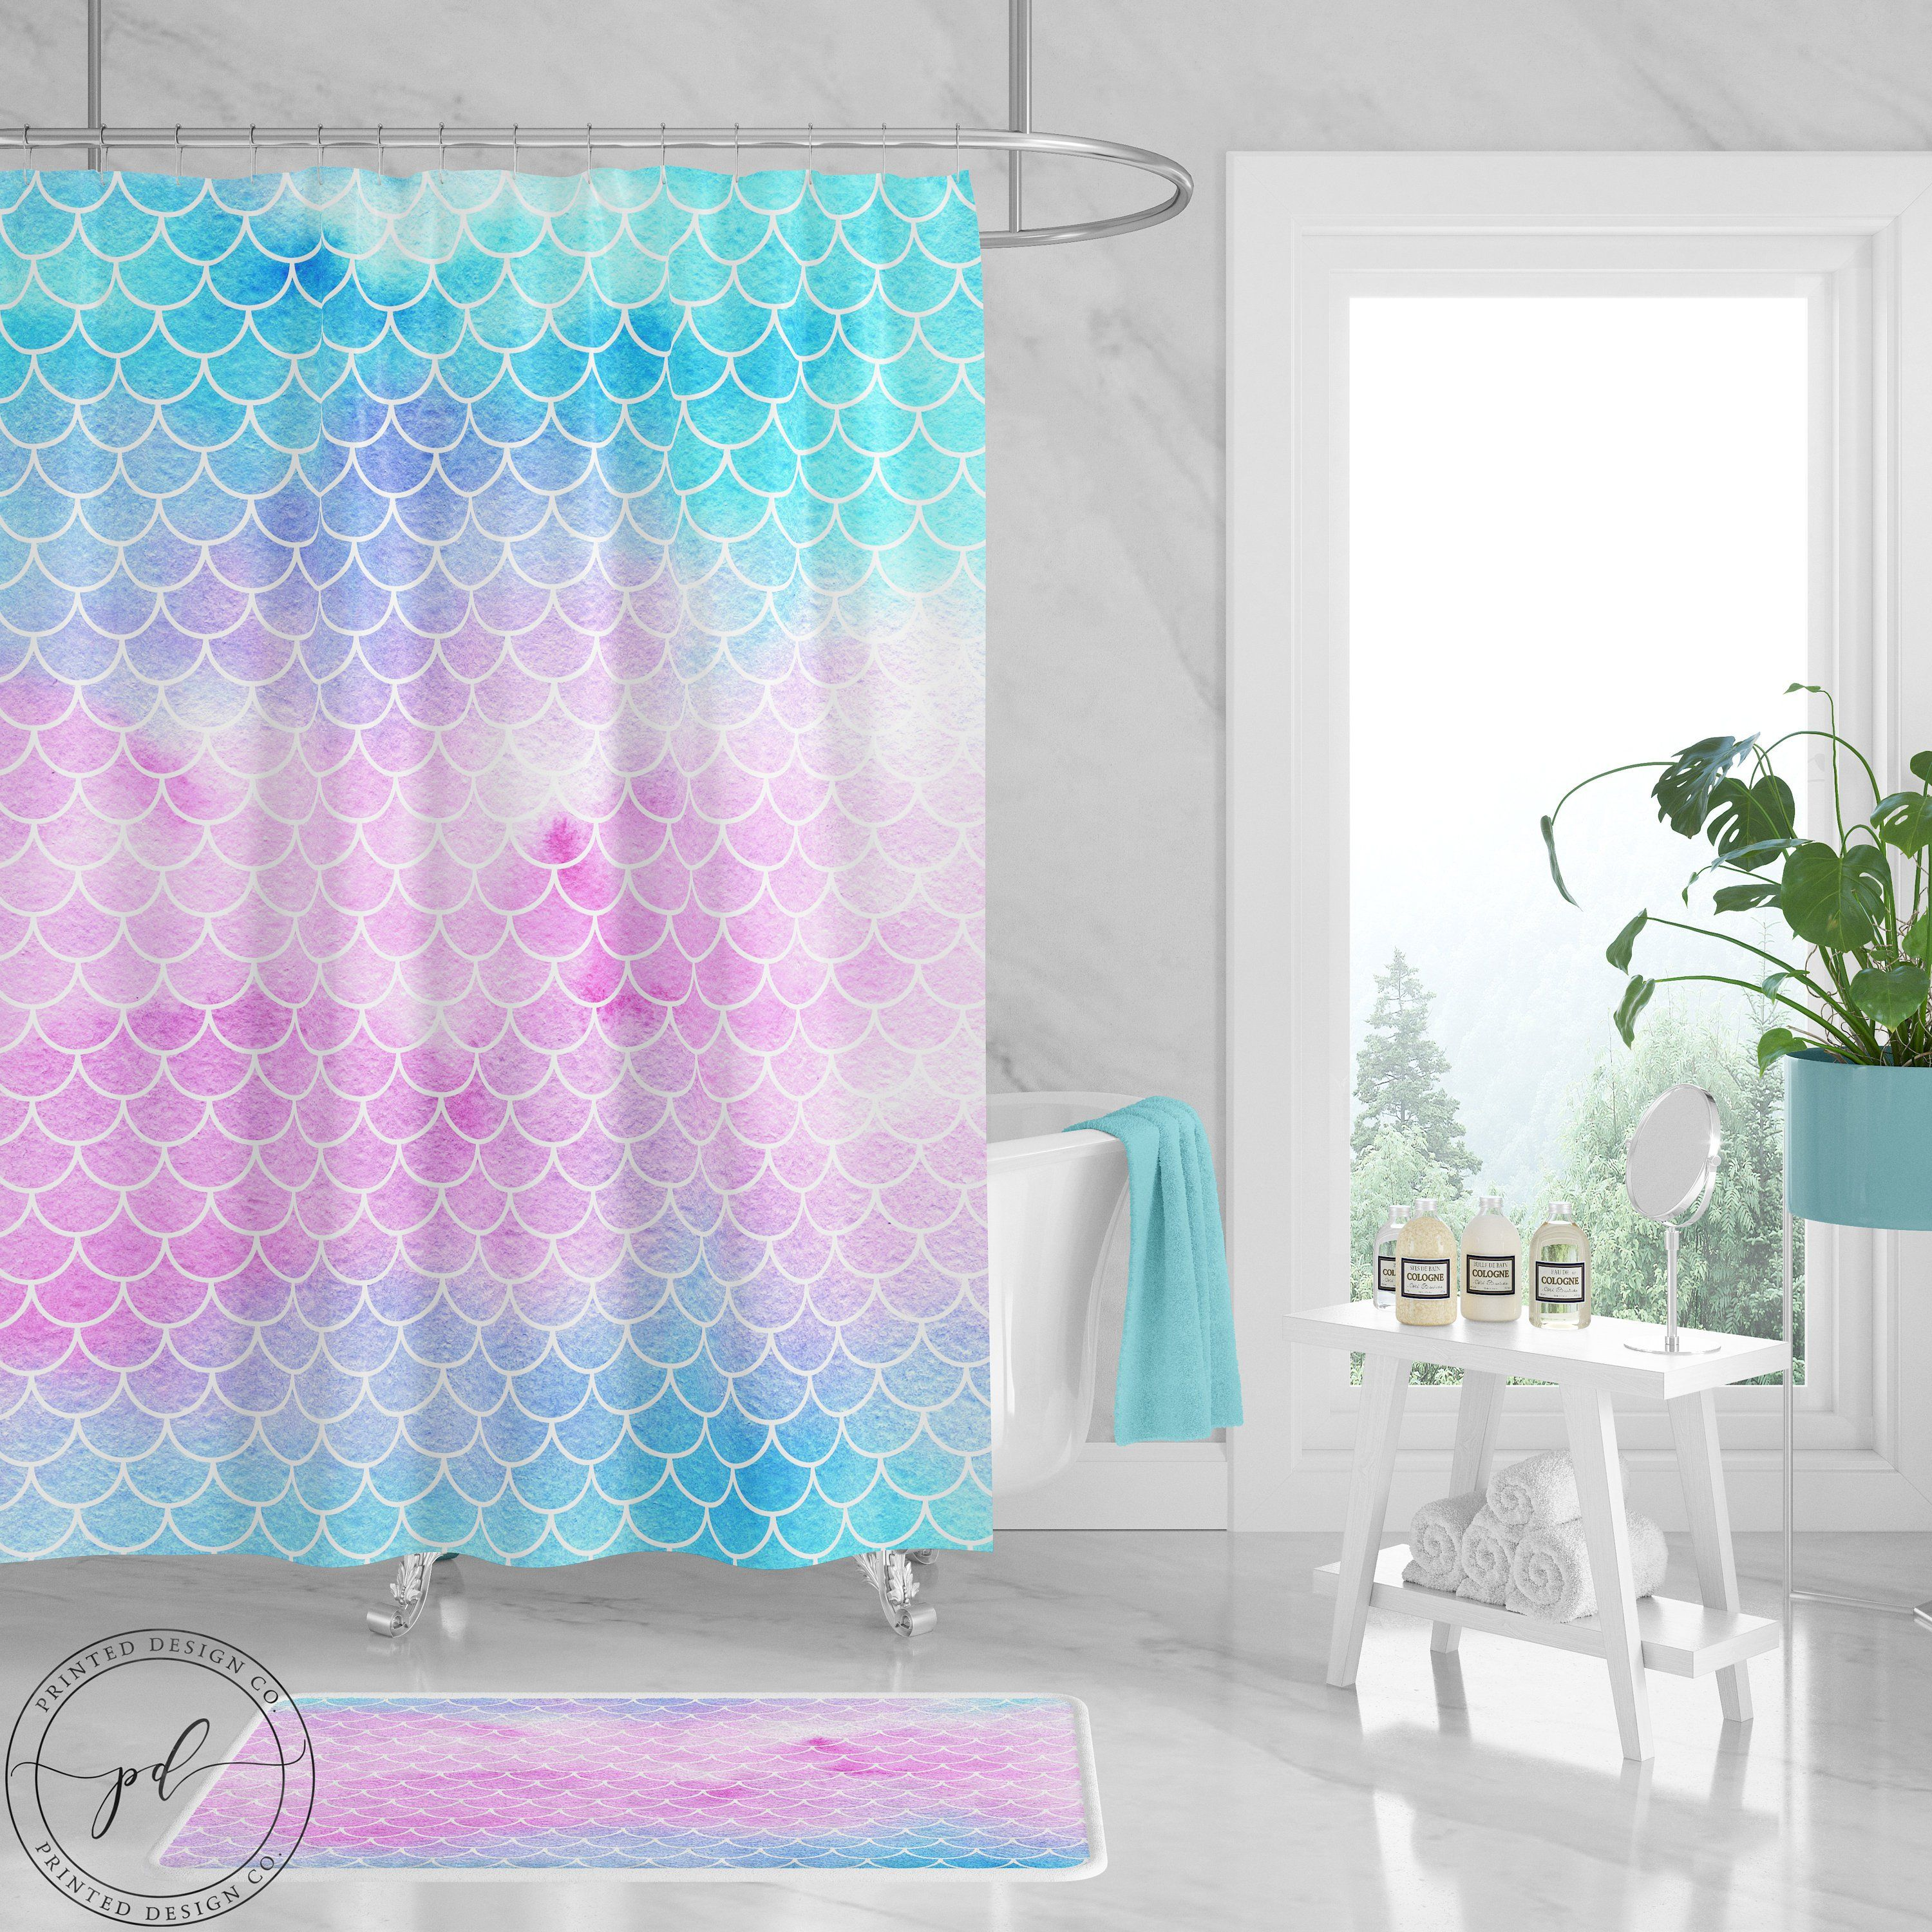 Mermaid Scale Shower Curtain Mermaid Shower Curtain Watercolor Mermaid Scales Pink Teal Blue